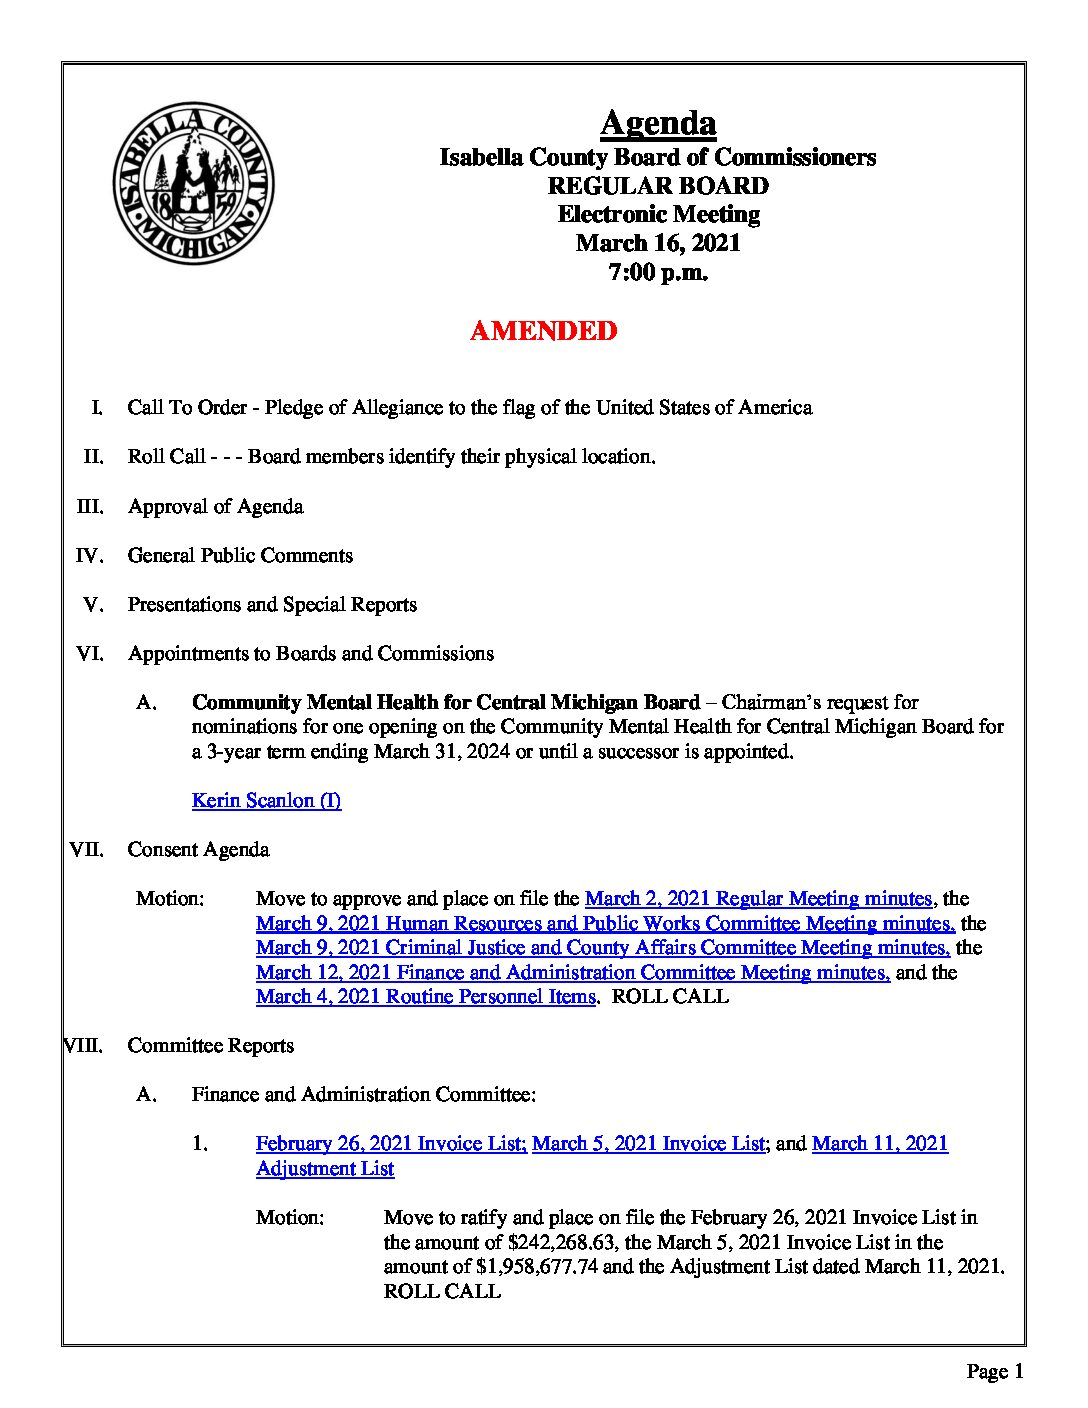 preview image of first page March 16, 2021 Agenda